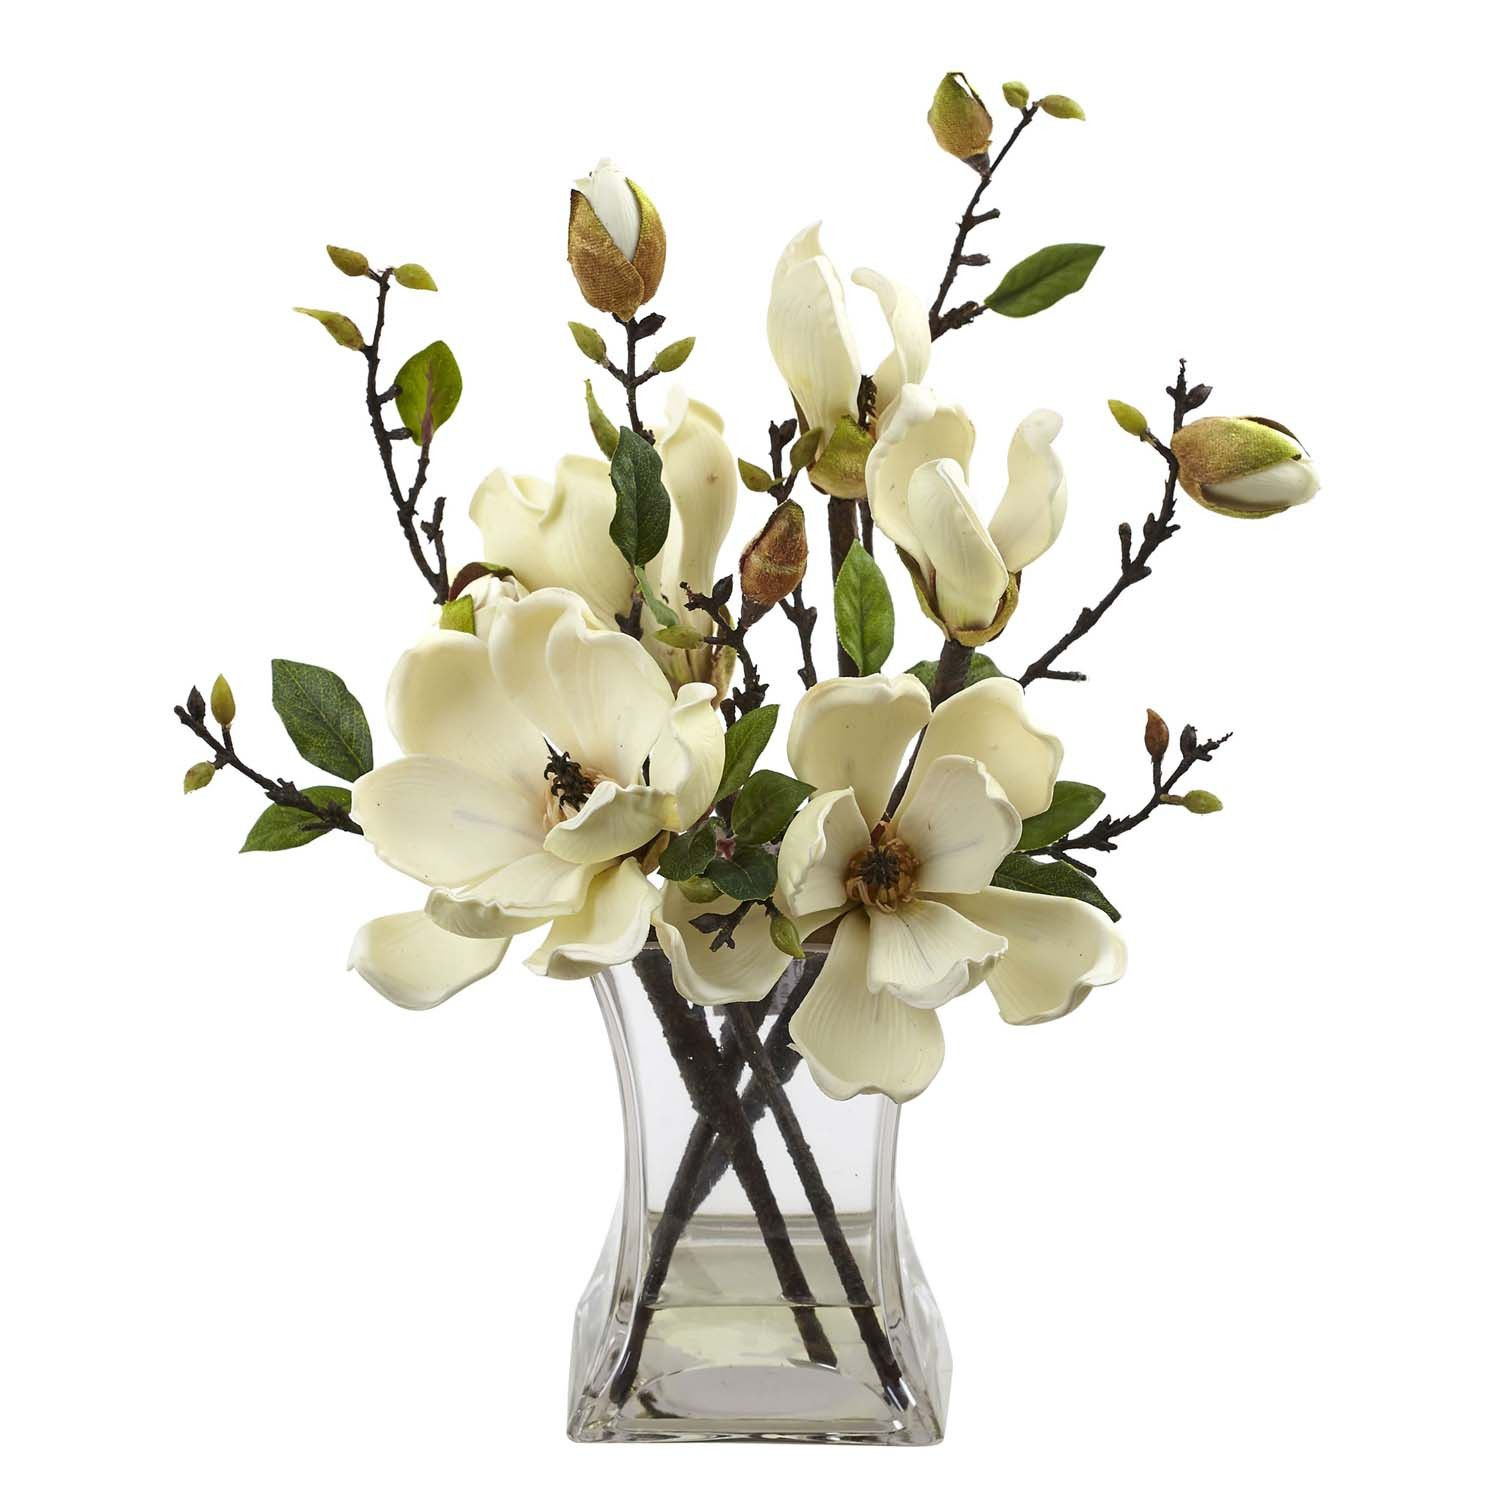 Magnolia Flower Arrangement Artificial Magnolia Arrangements Artificial Floral Arrangements Flower Arrangements